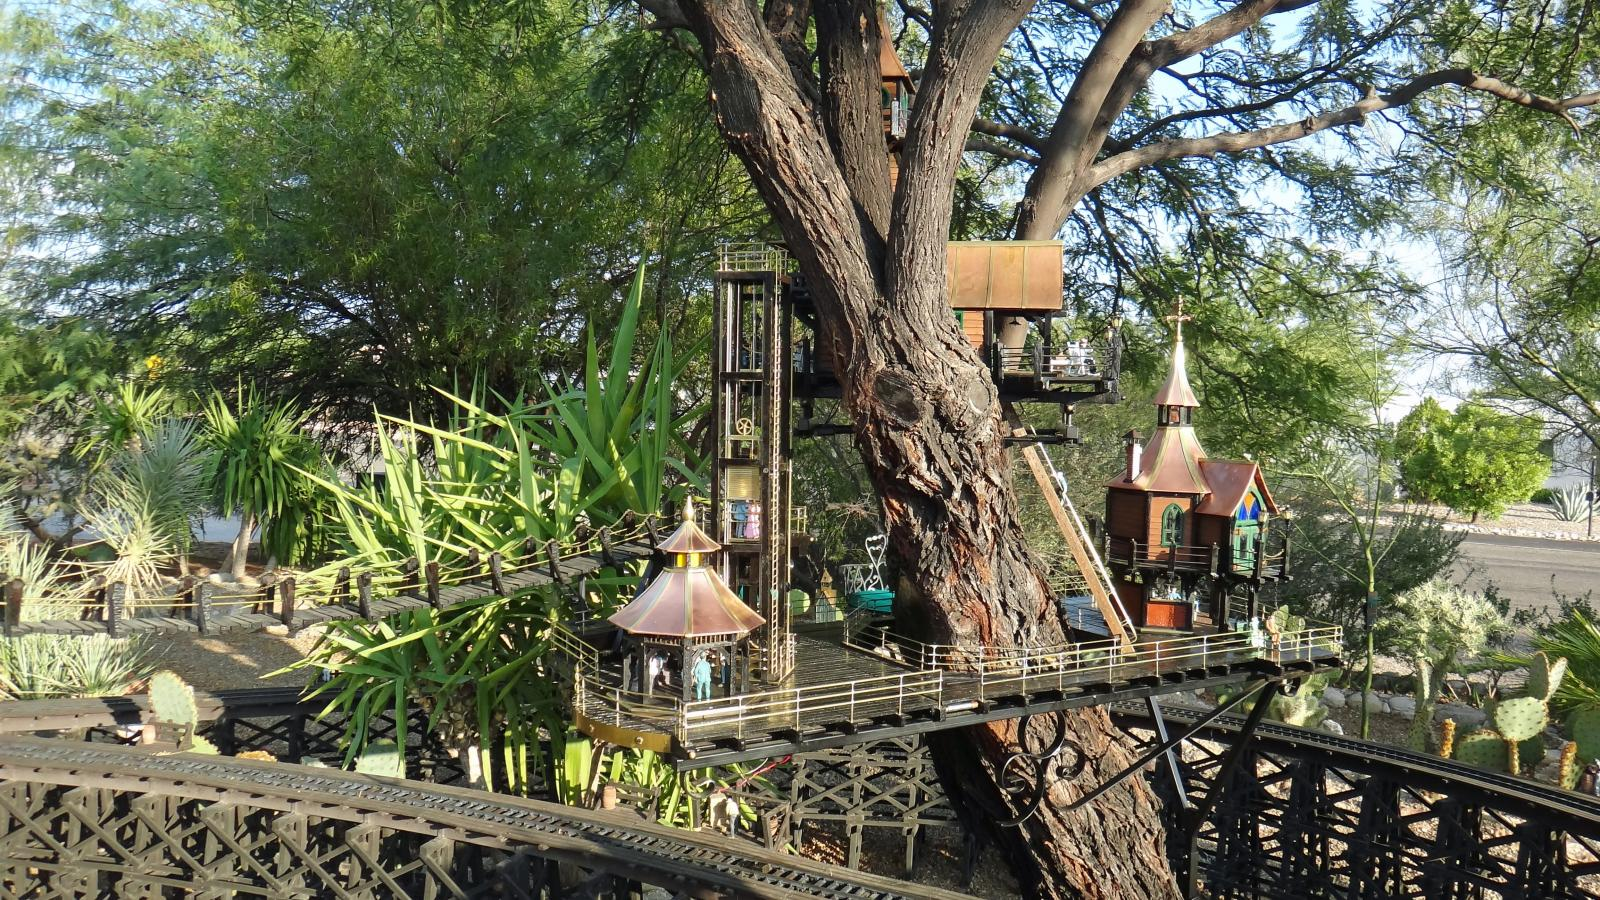 Garden Railway Treehouse Remodeled-22.JPG